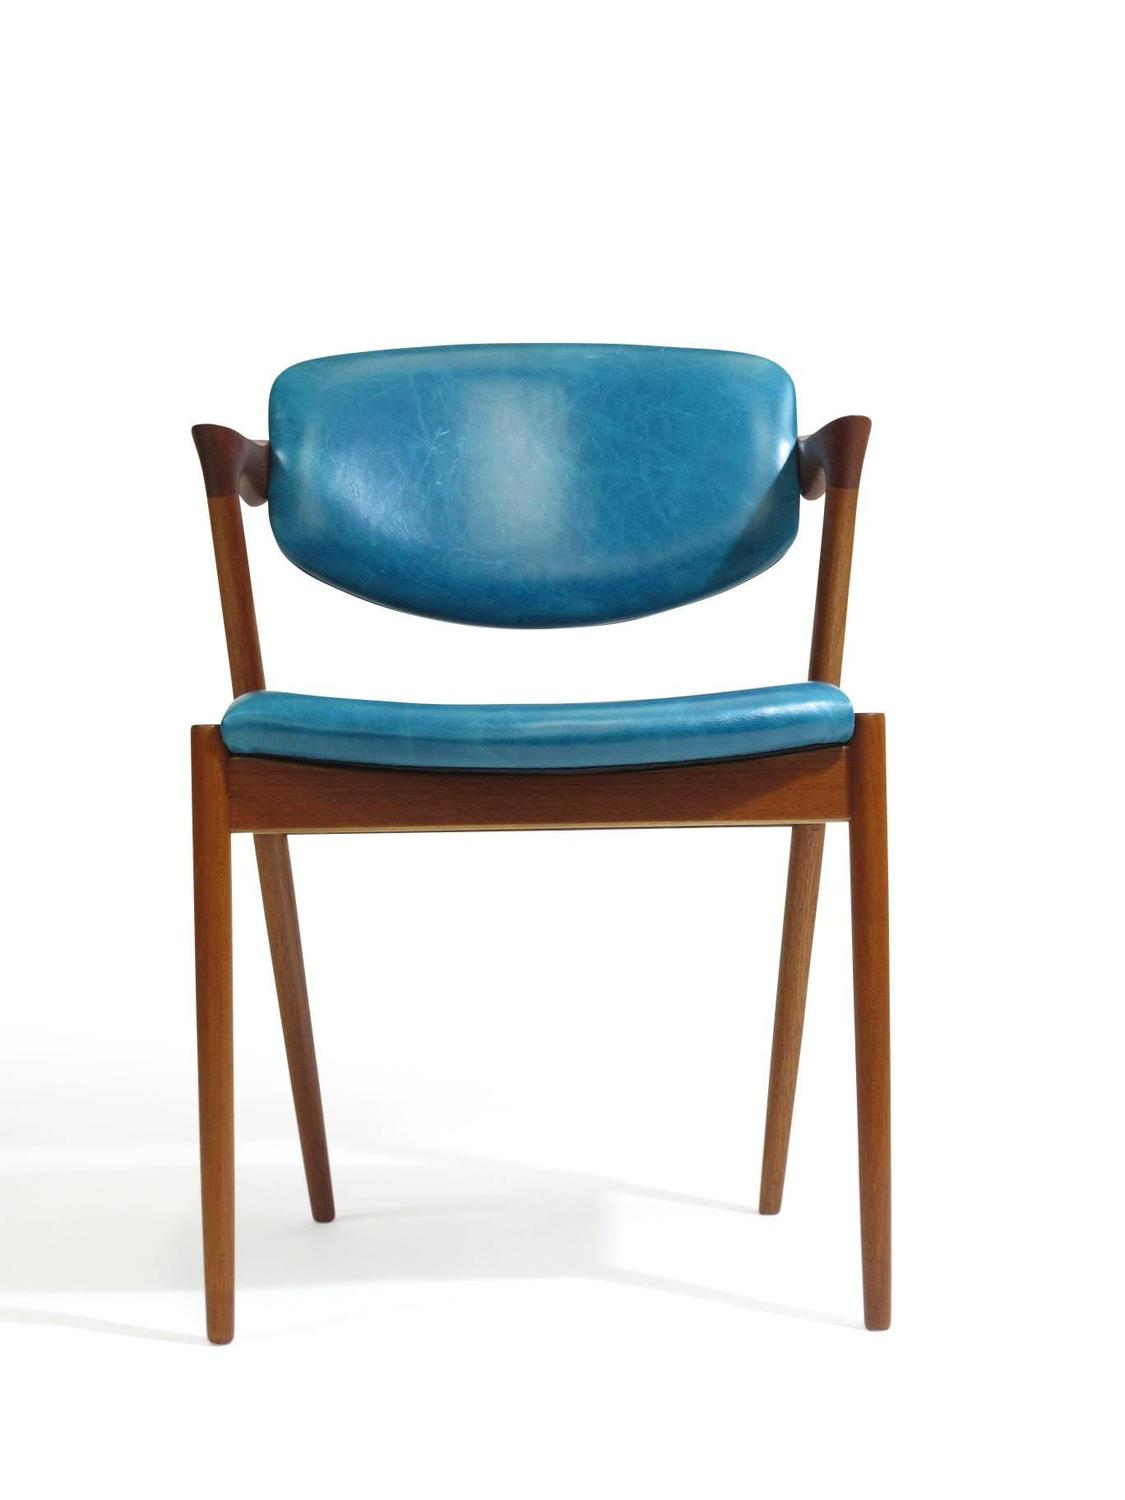 Turquoise Leather Chair Six Kai Kristiansen Teak Danish Dining Chairs In Turquoise